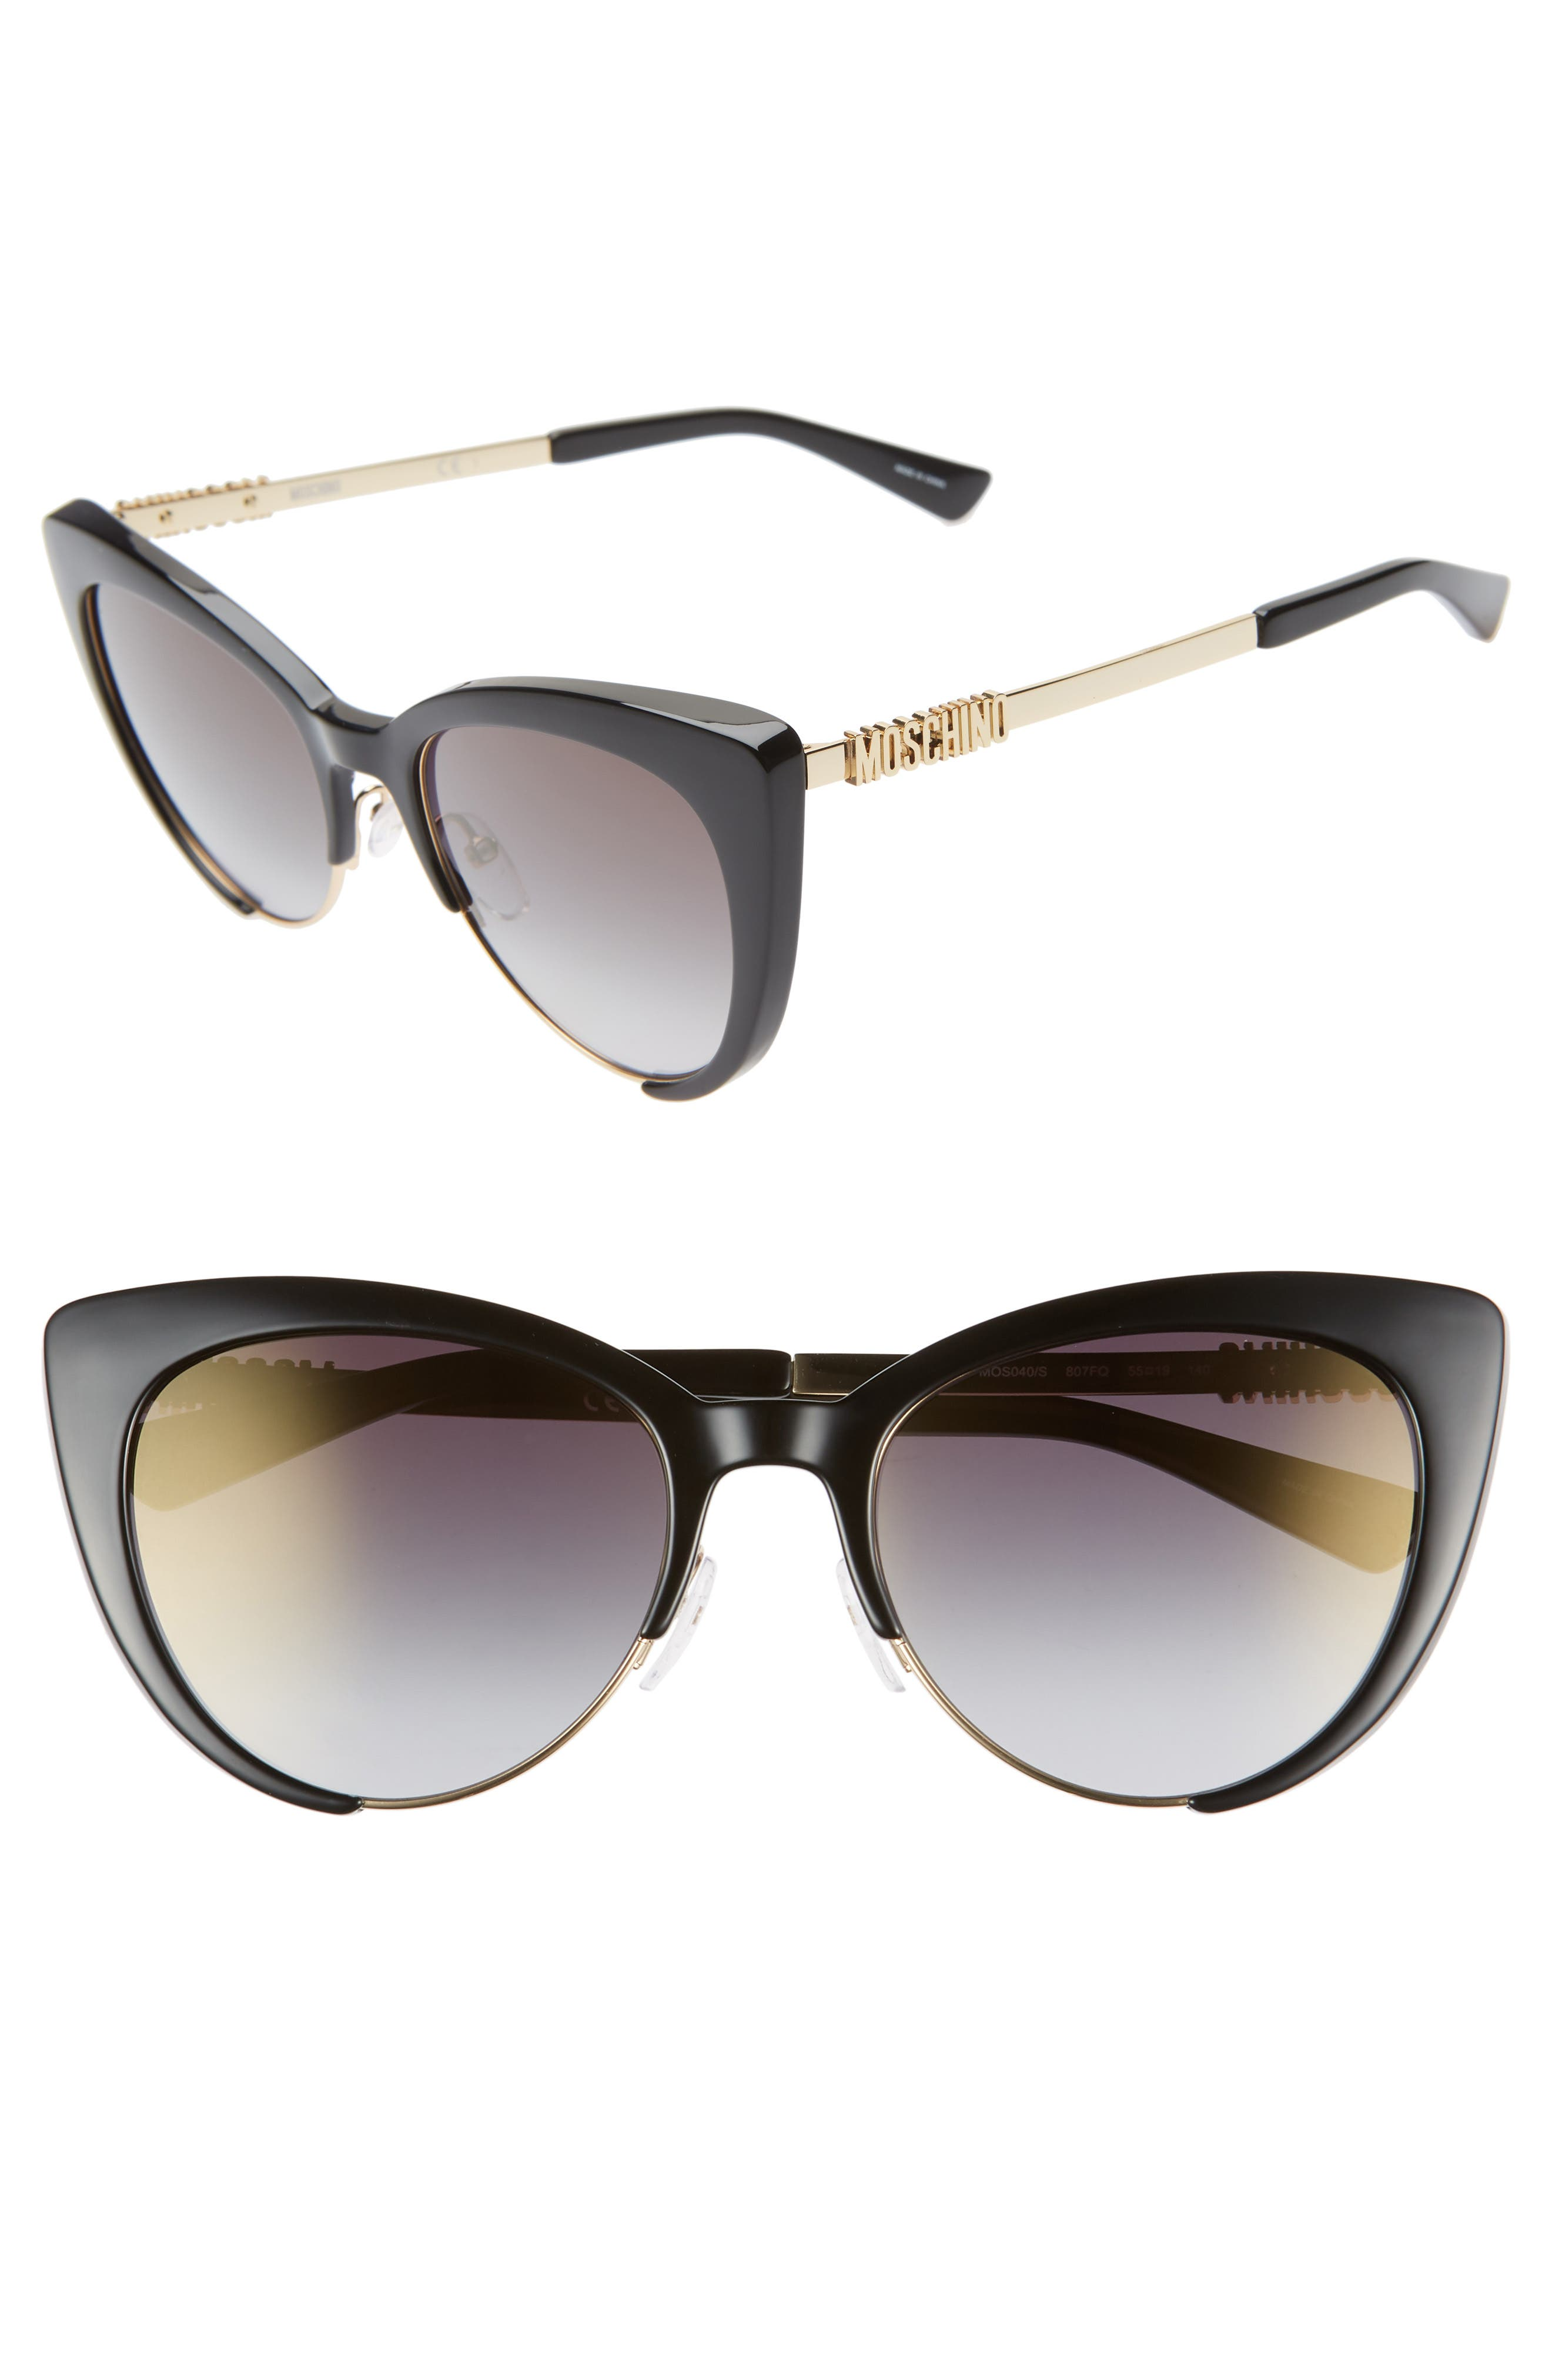 MOSCHINO, 55mm Cat Eye Sunglasses, Main thumbnail 1, color, BLACK